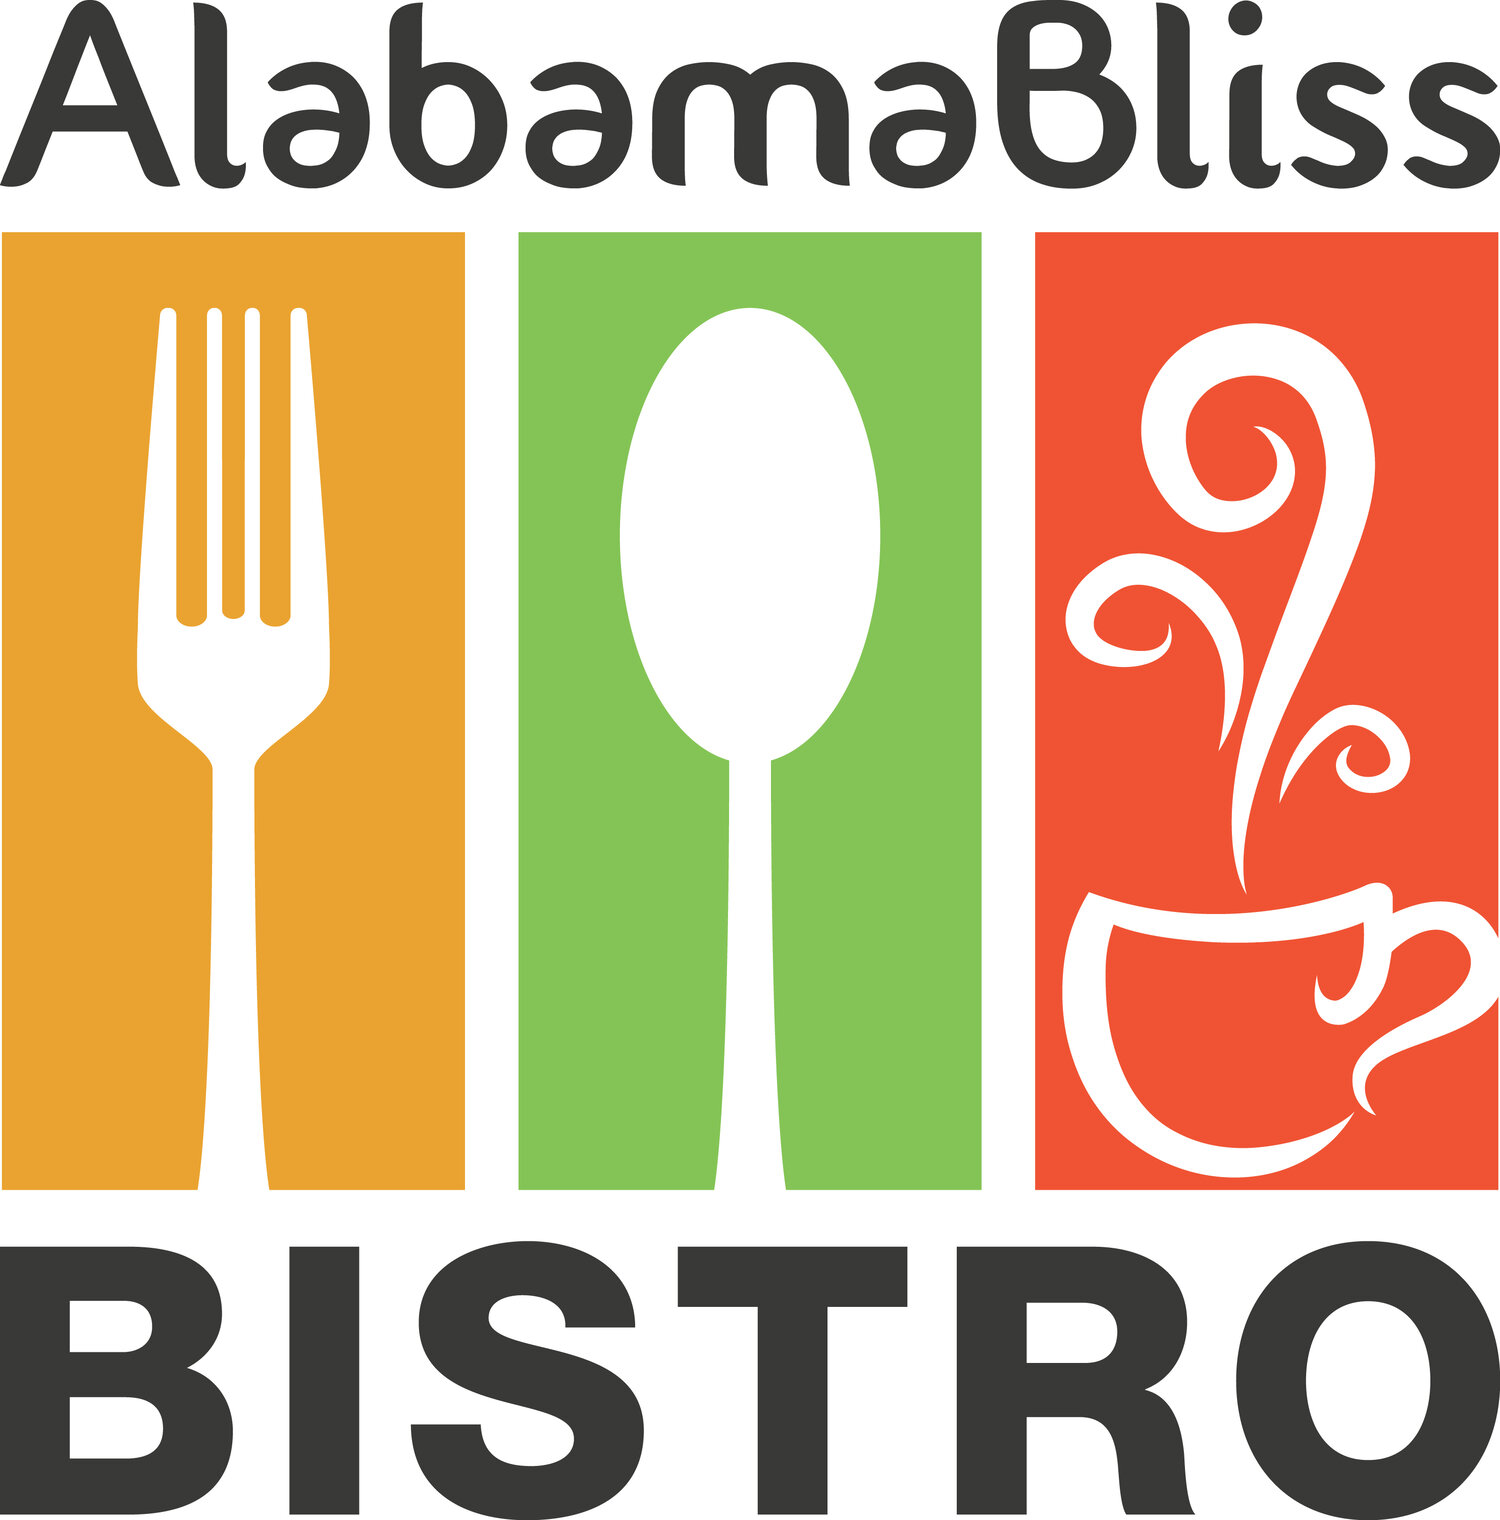 Alabama Bliss Bistro